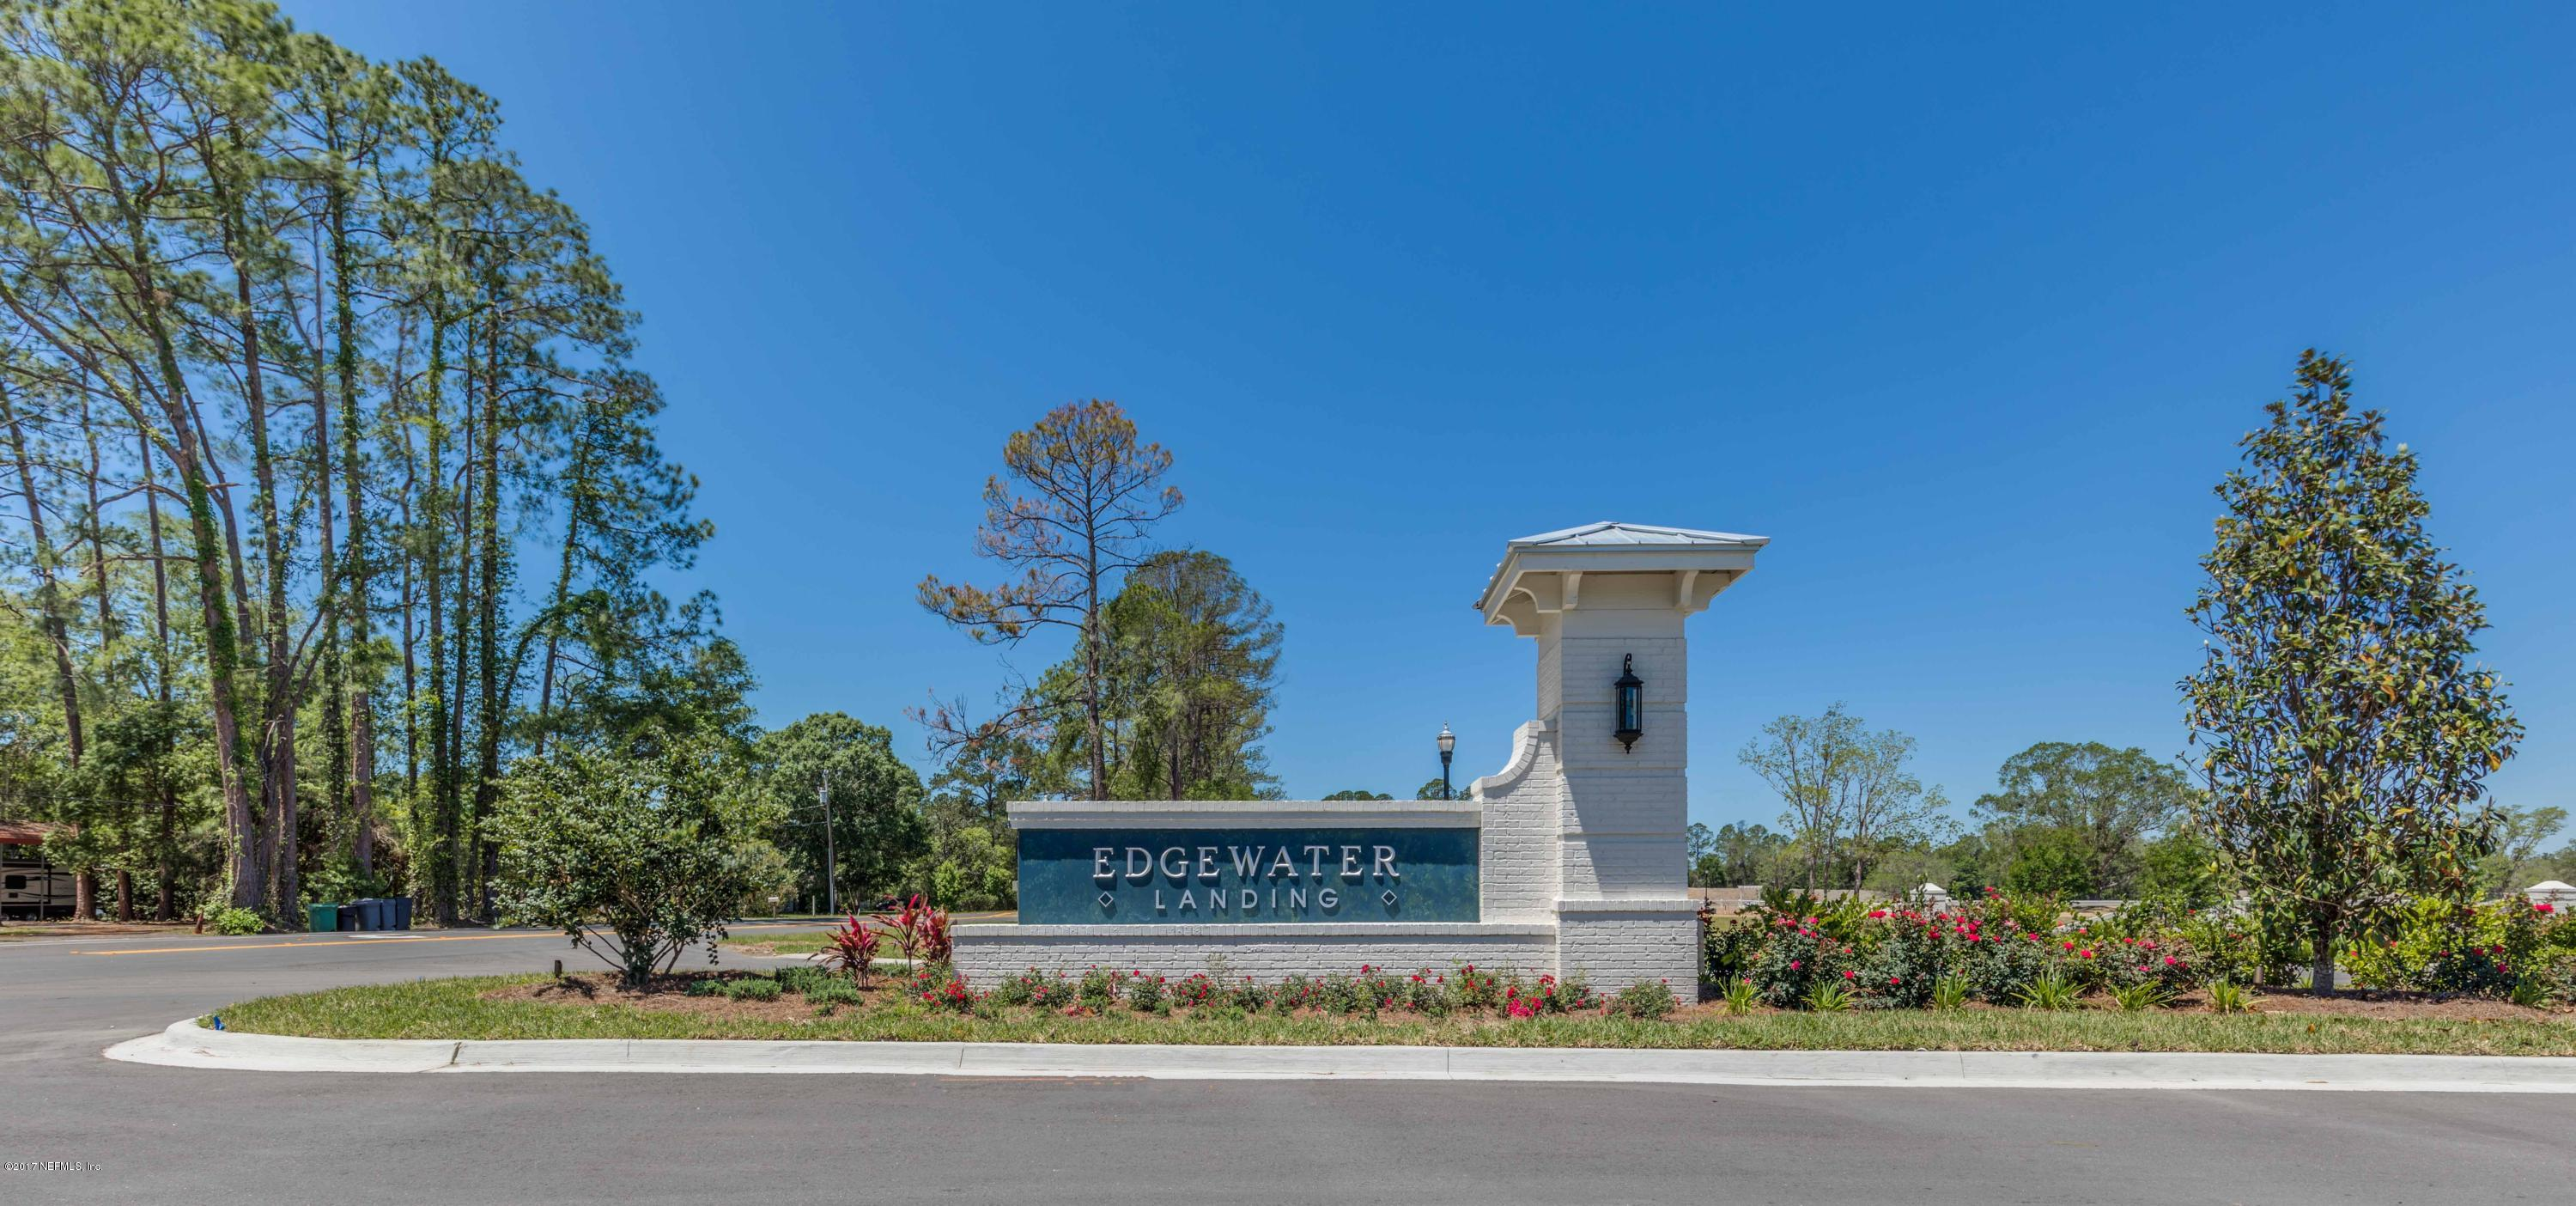 3282 CYPRESS WALK, GREEN COVE SPRINGS, FLORIDA 32043, 4 Bedrooms Bedrooms, ,2 BathroomsBathrooms,Residential - single family,For sale,CYPRESS WALK,922673